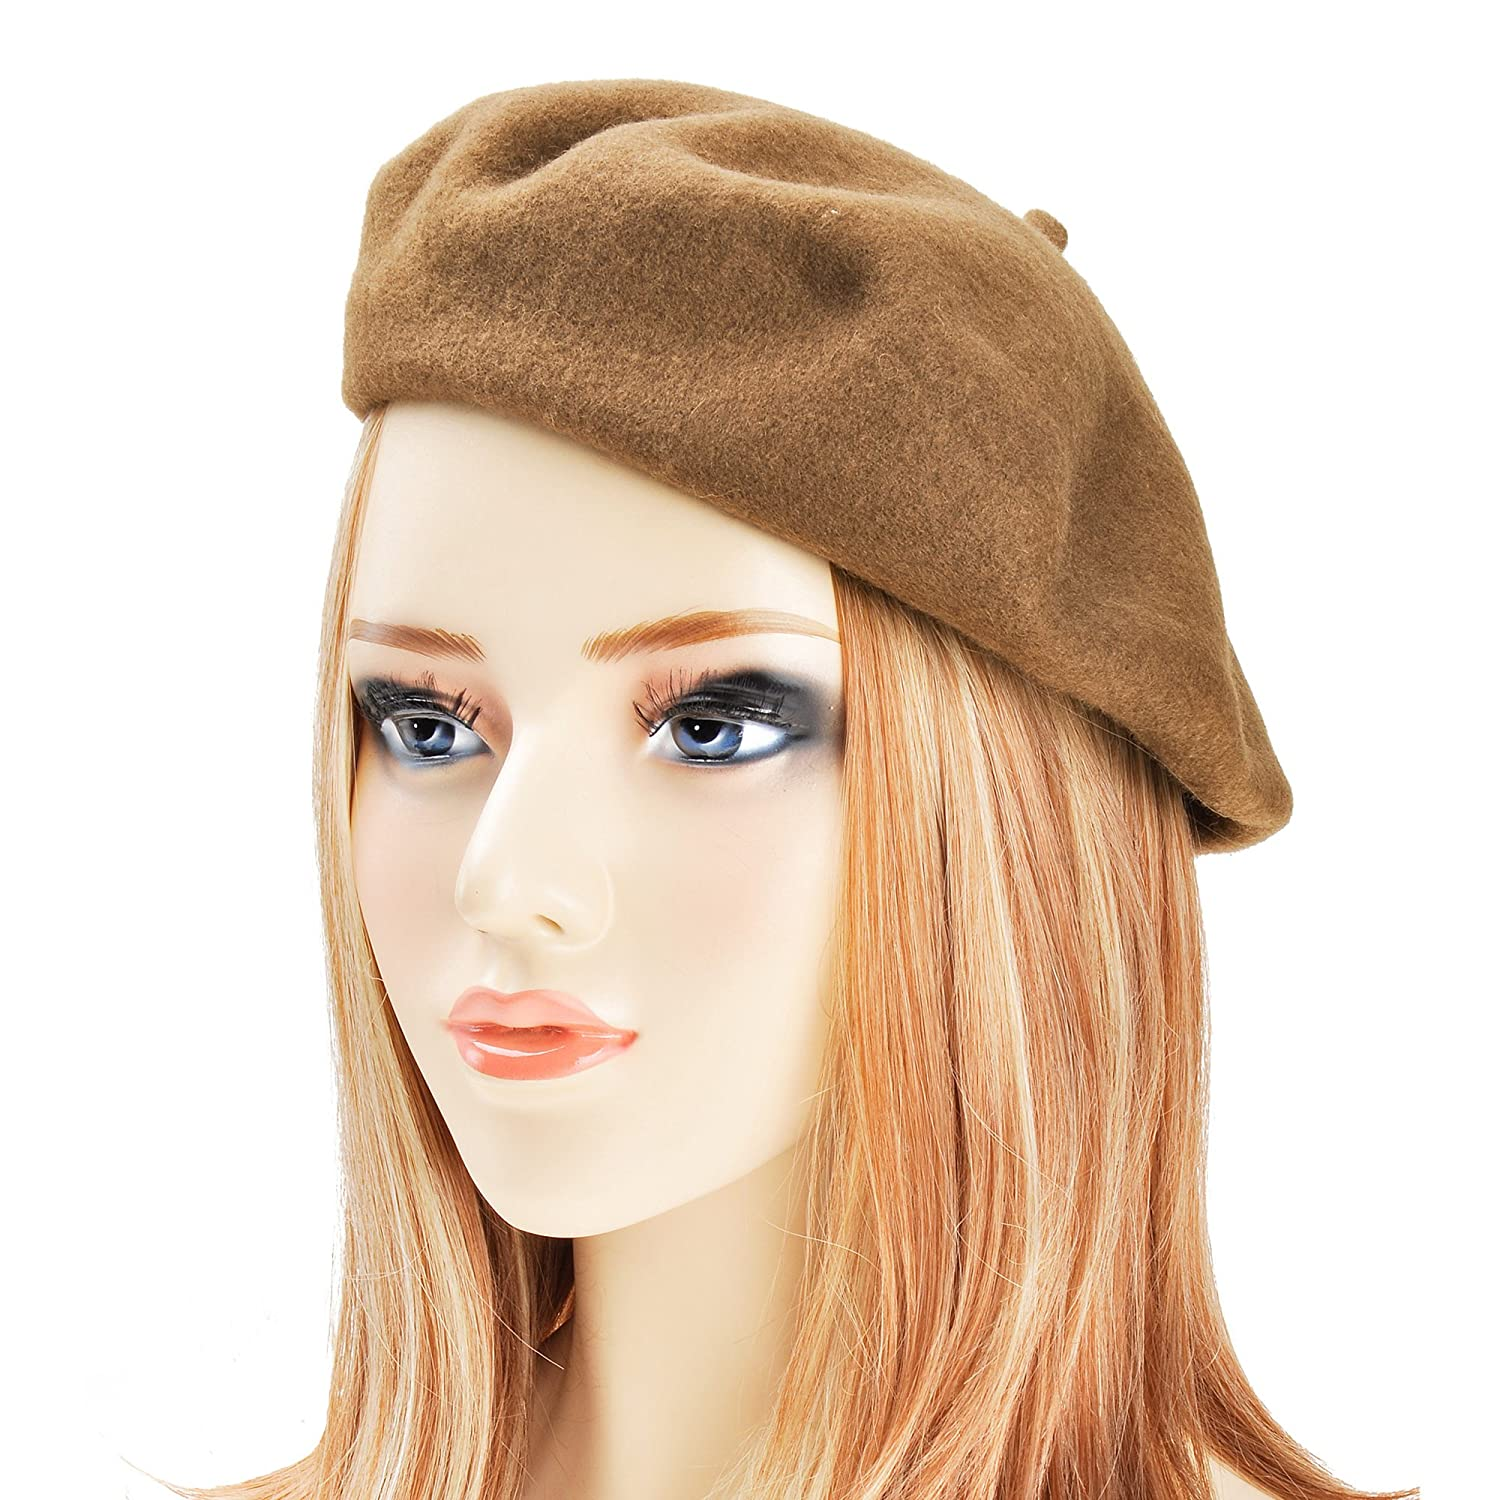 ZLYC Wool Beret Hat Classic Solid Color French Beret for Women by ZYJ-MZ-046-green